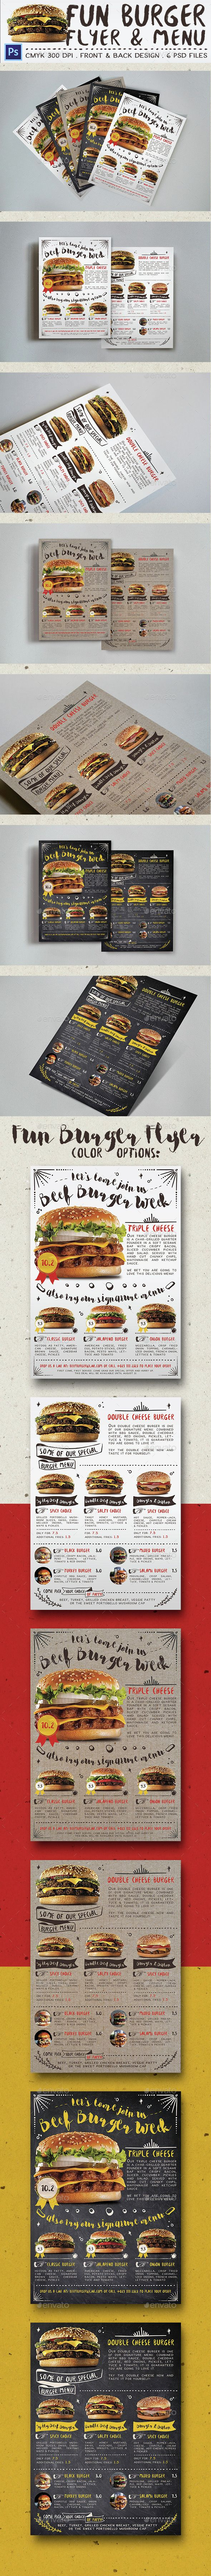 Fun Burger Flyer & Menu